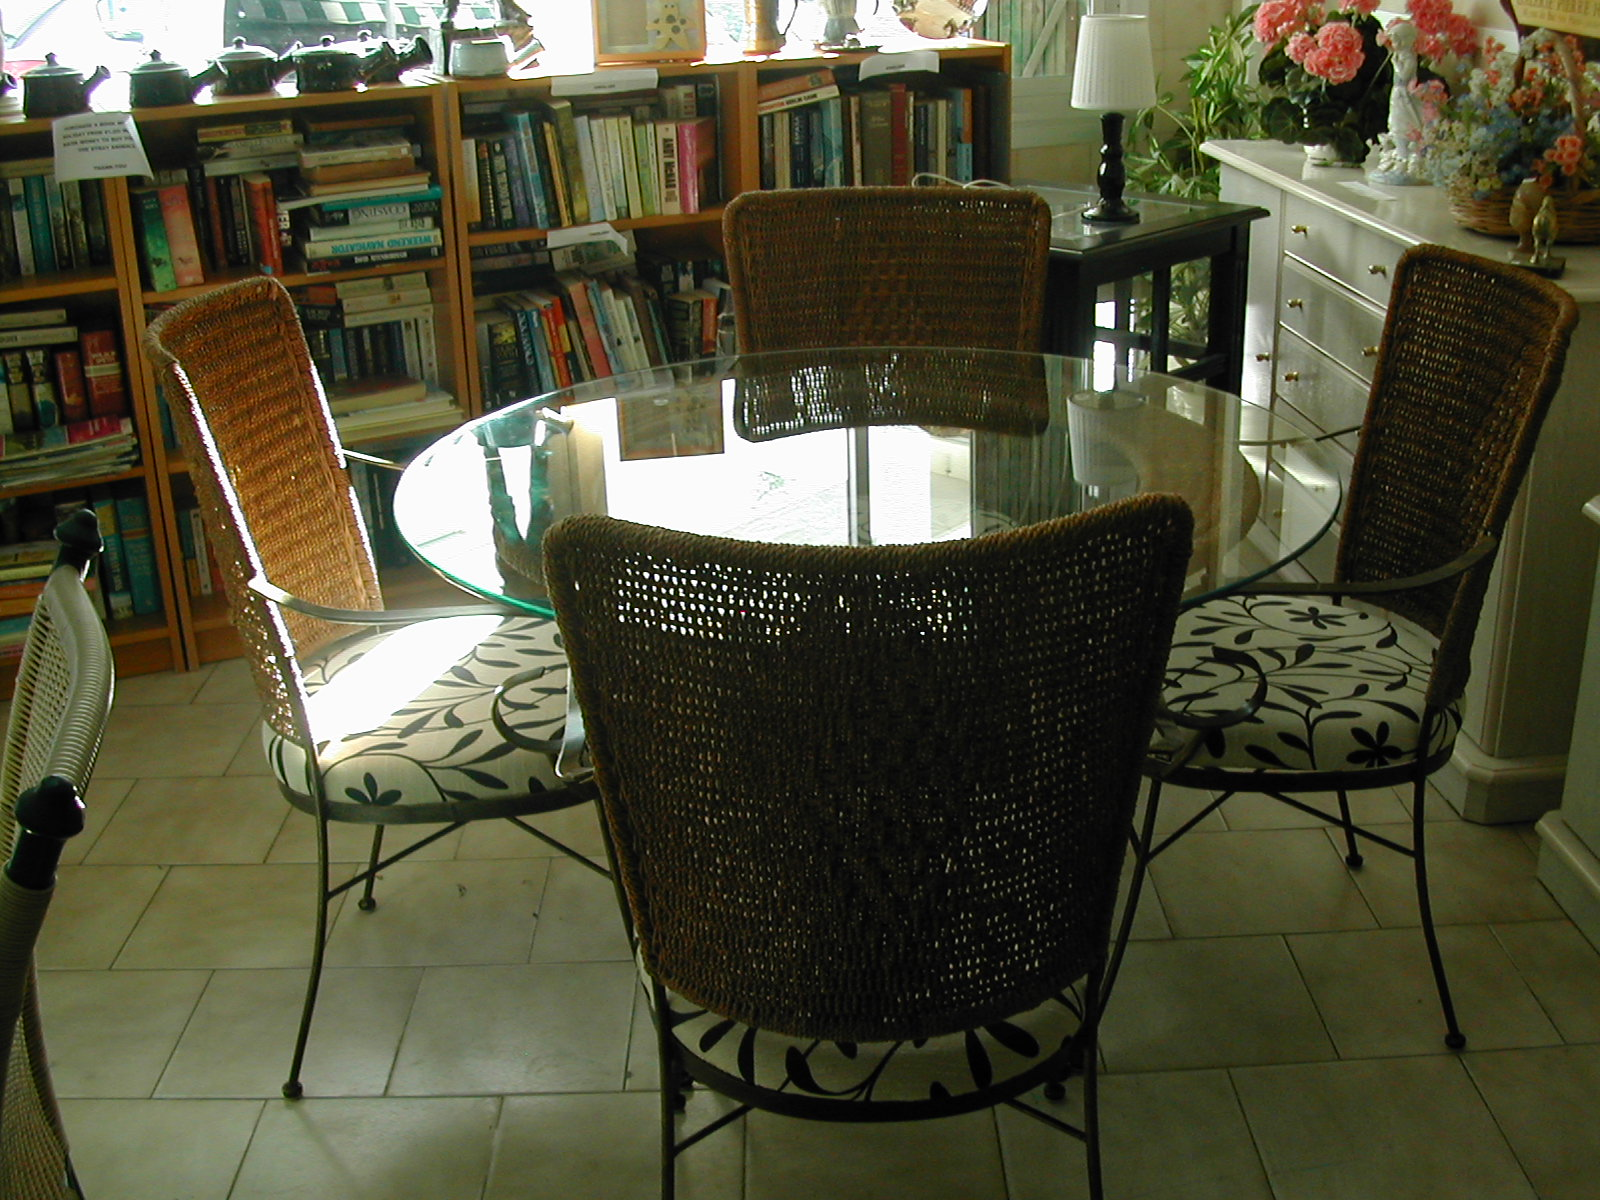 bar woven size aluminum interior stool wicker and natural hanging krattan sale counter with modern parisian garden design paris stores stools bistro small chair white full chairs of stackable decor round furniture rattan ikea red arm for french benefits style colorful table outdoor idea